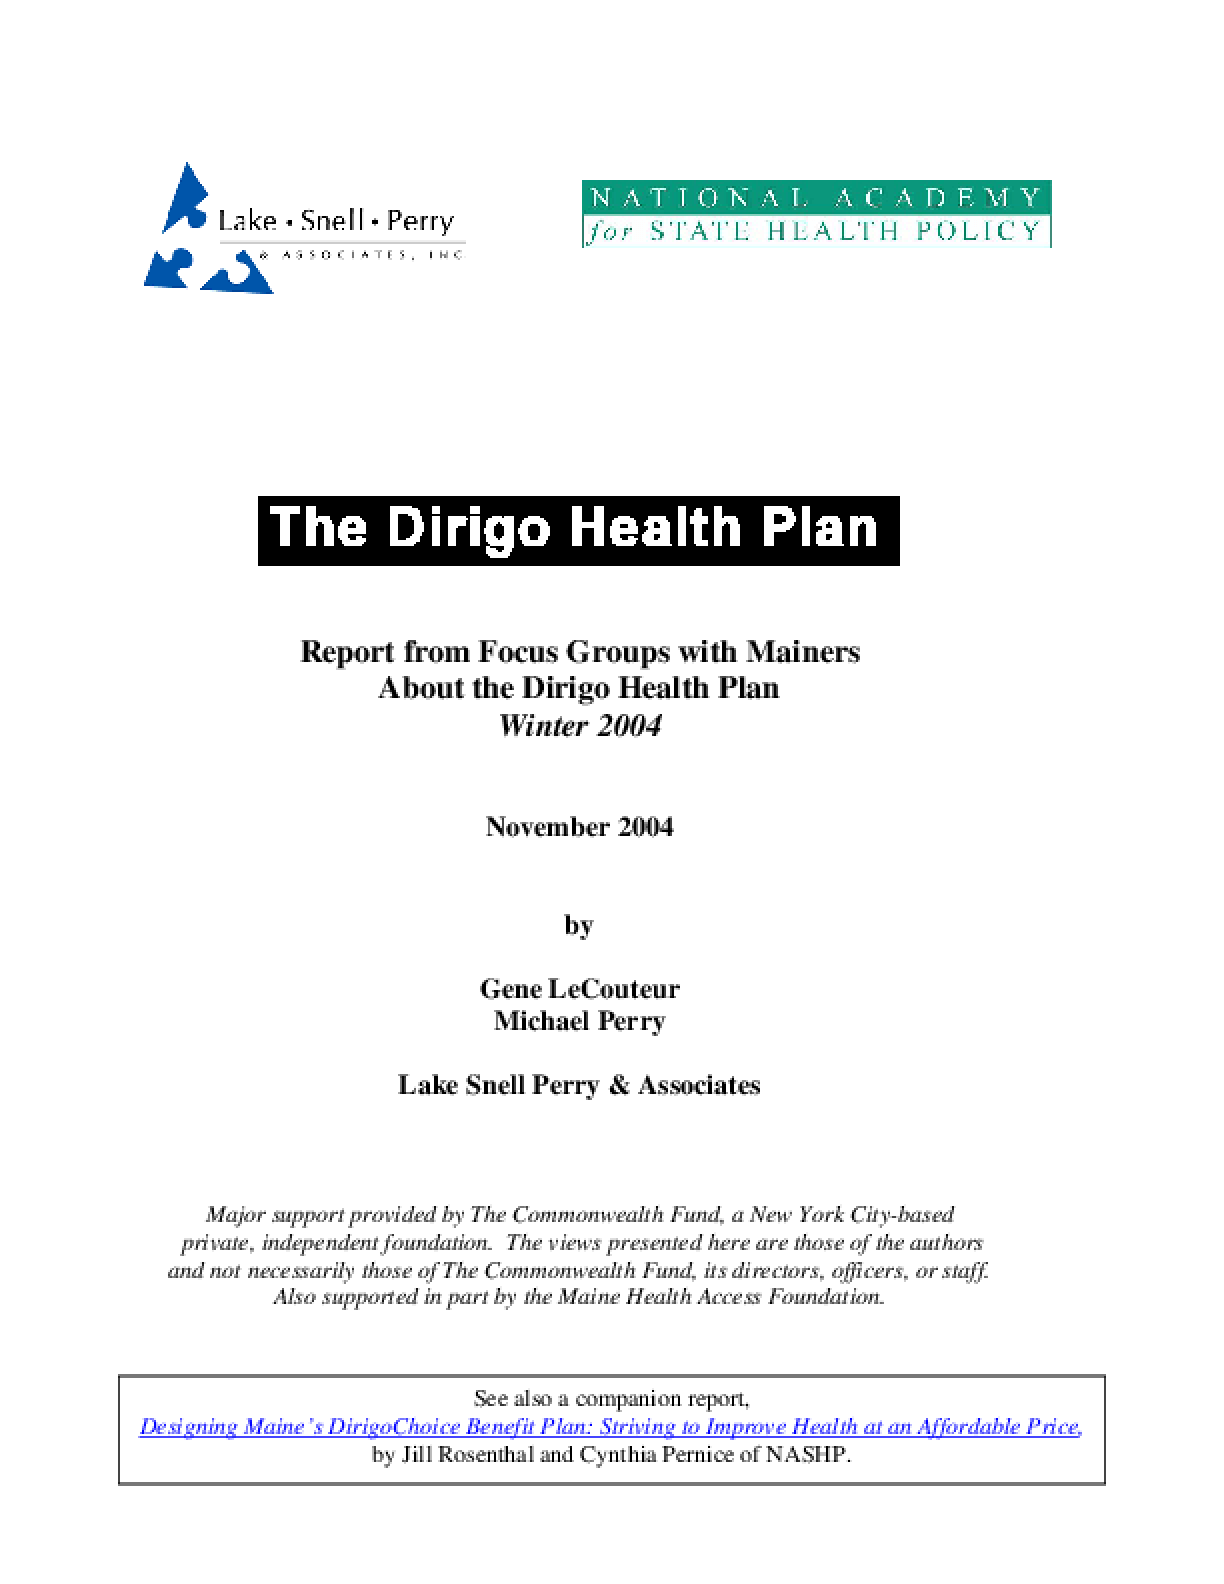 Report From Focus Groups With Mainers About the Dirigo Health Plan